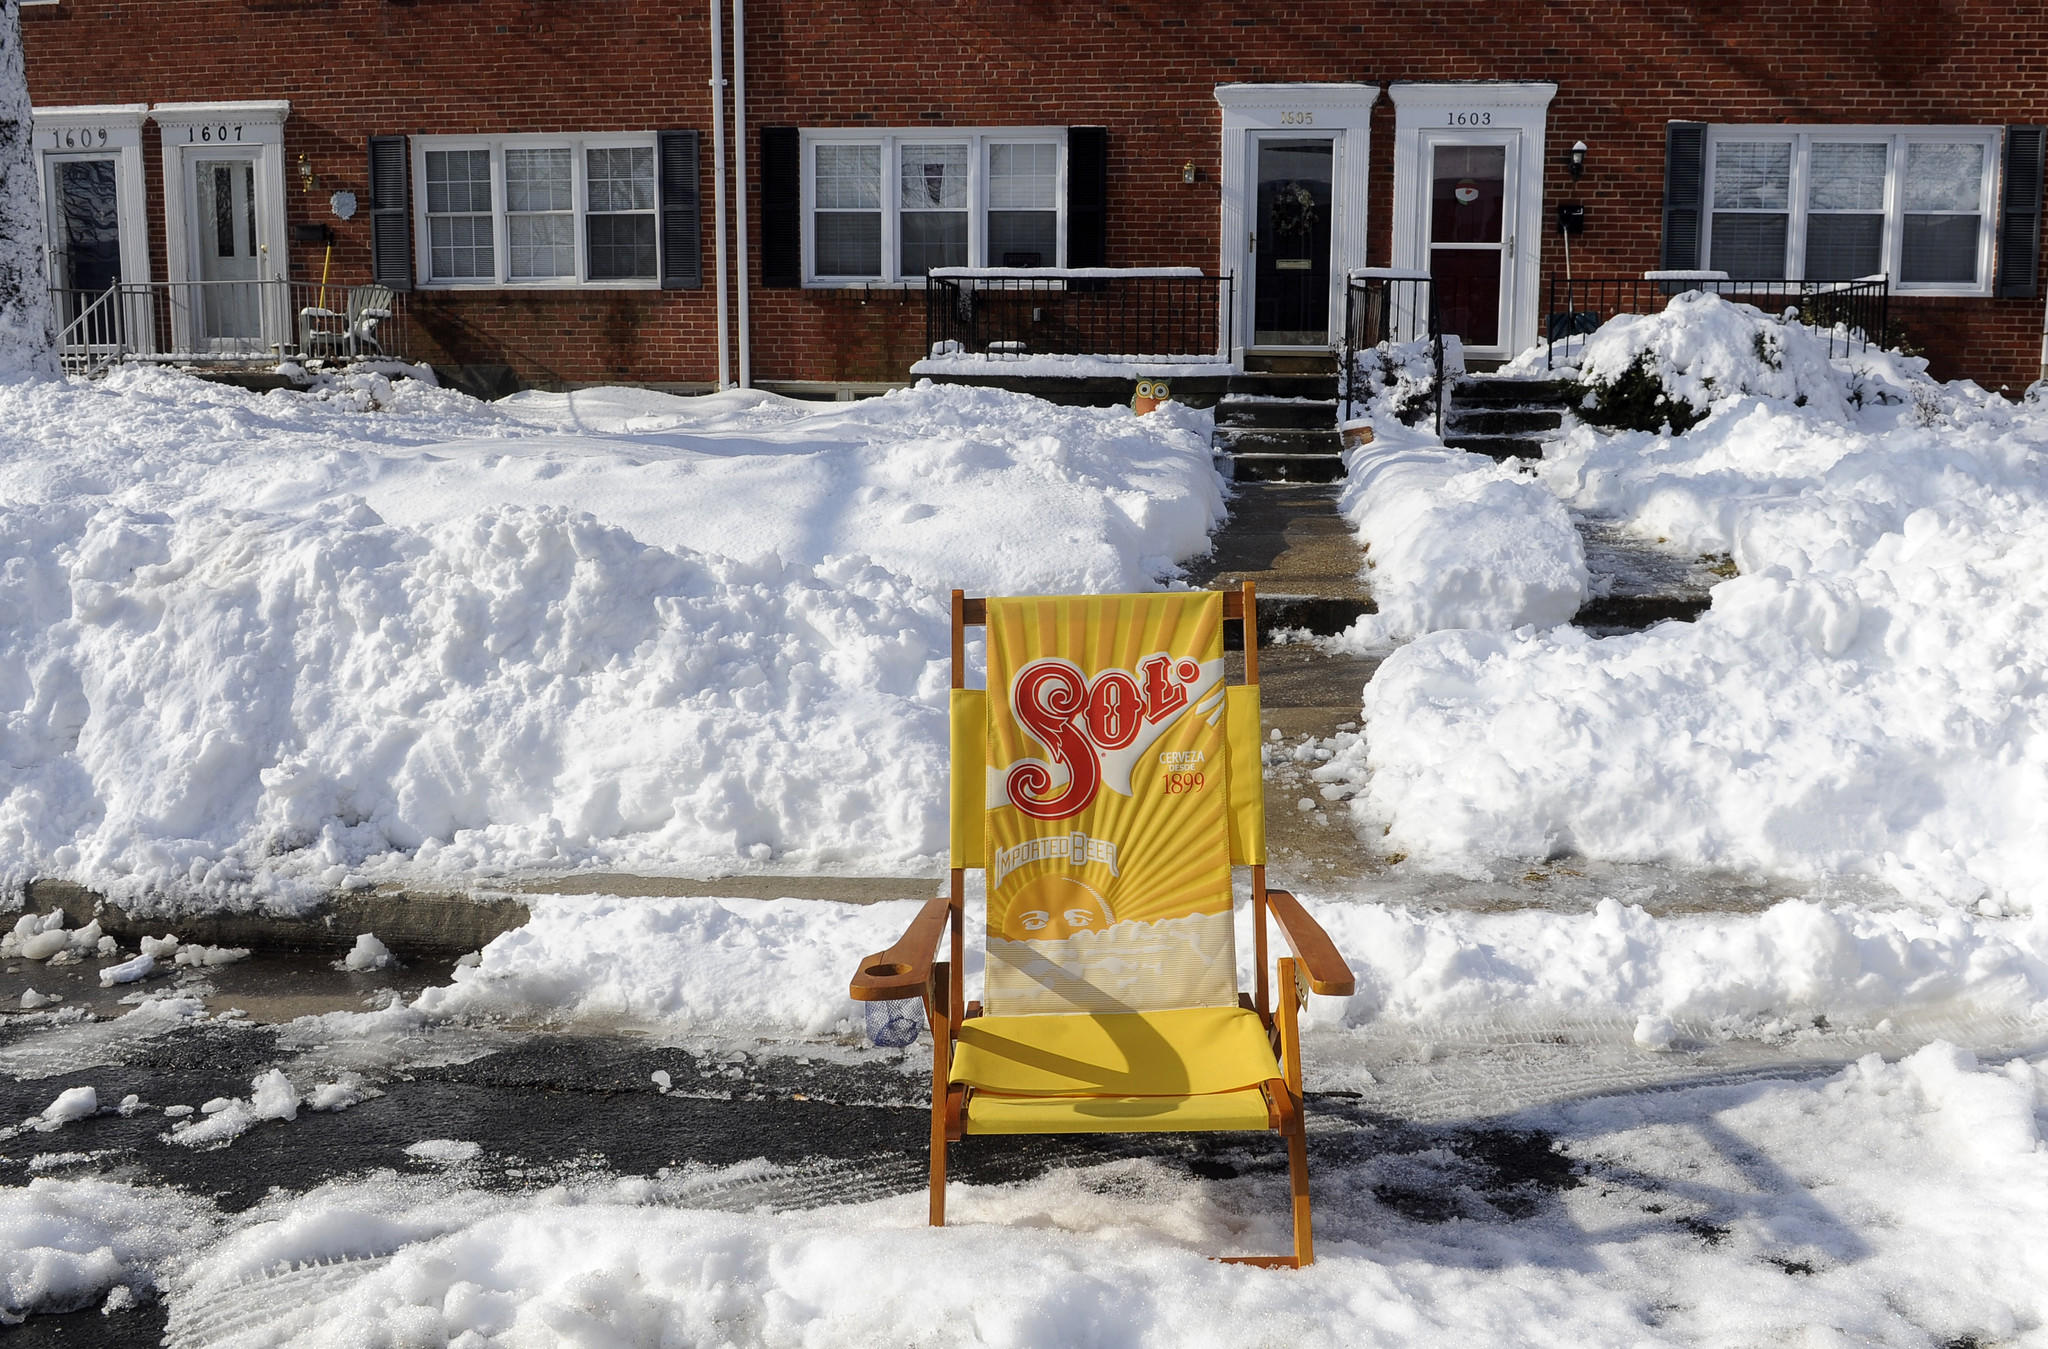 Someone in the Knettishall area of Towson used a beach chair to mark a parking space.